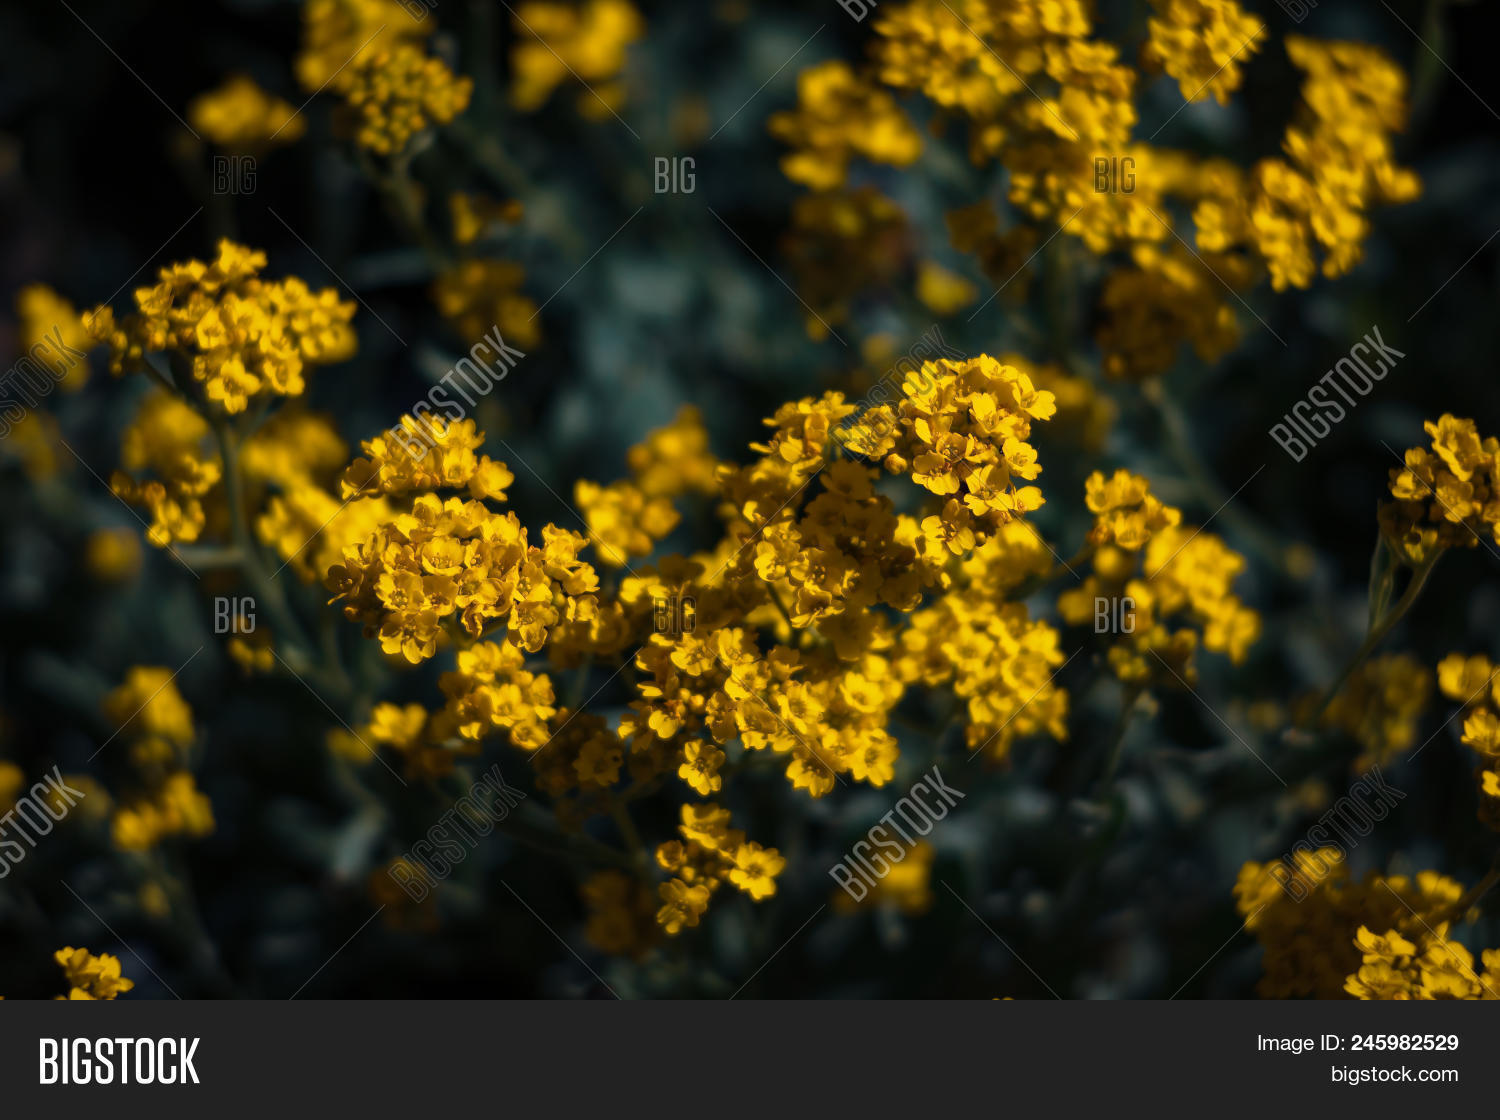 Small Yellow Flowers Image Photo Free Trial Bigstock